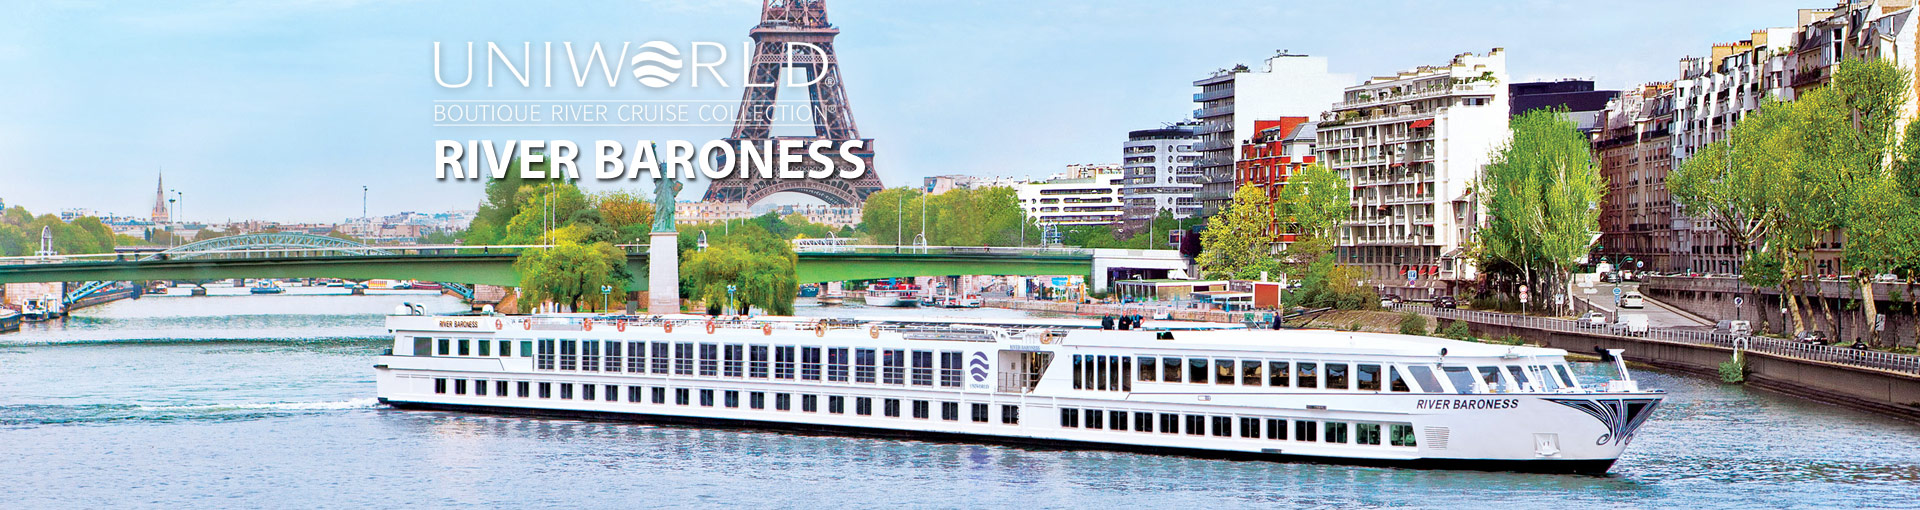 Uniworld River Cruises River Baroness river ship